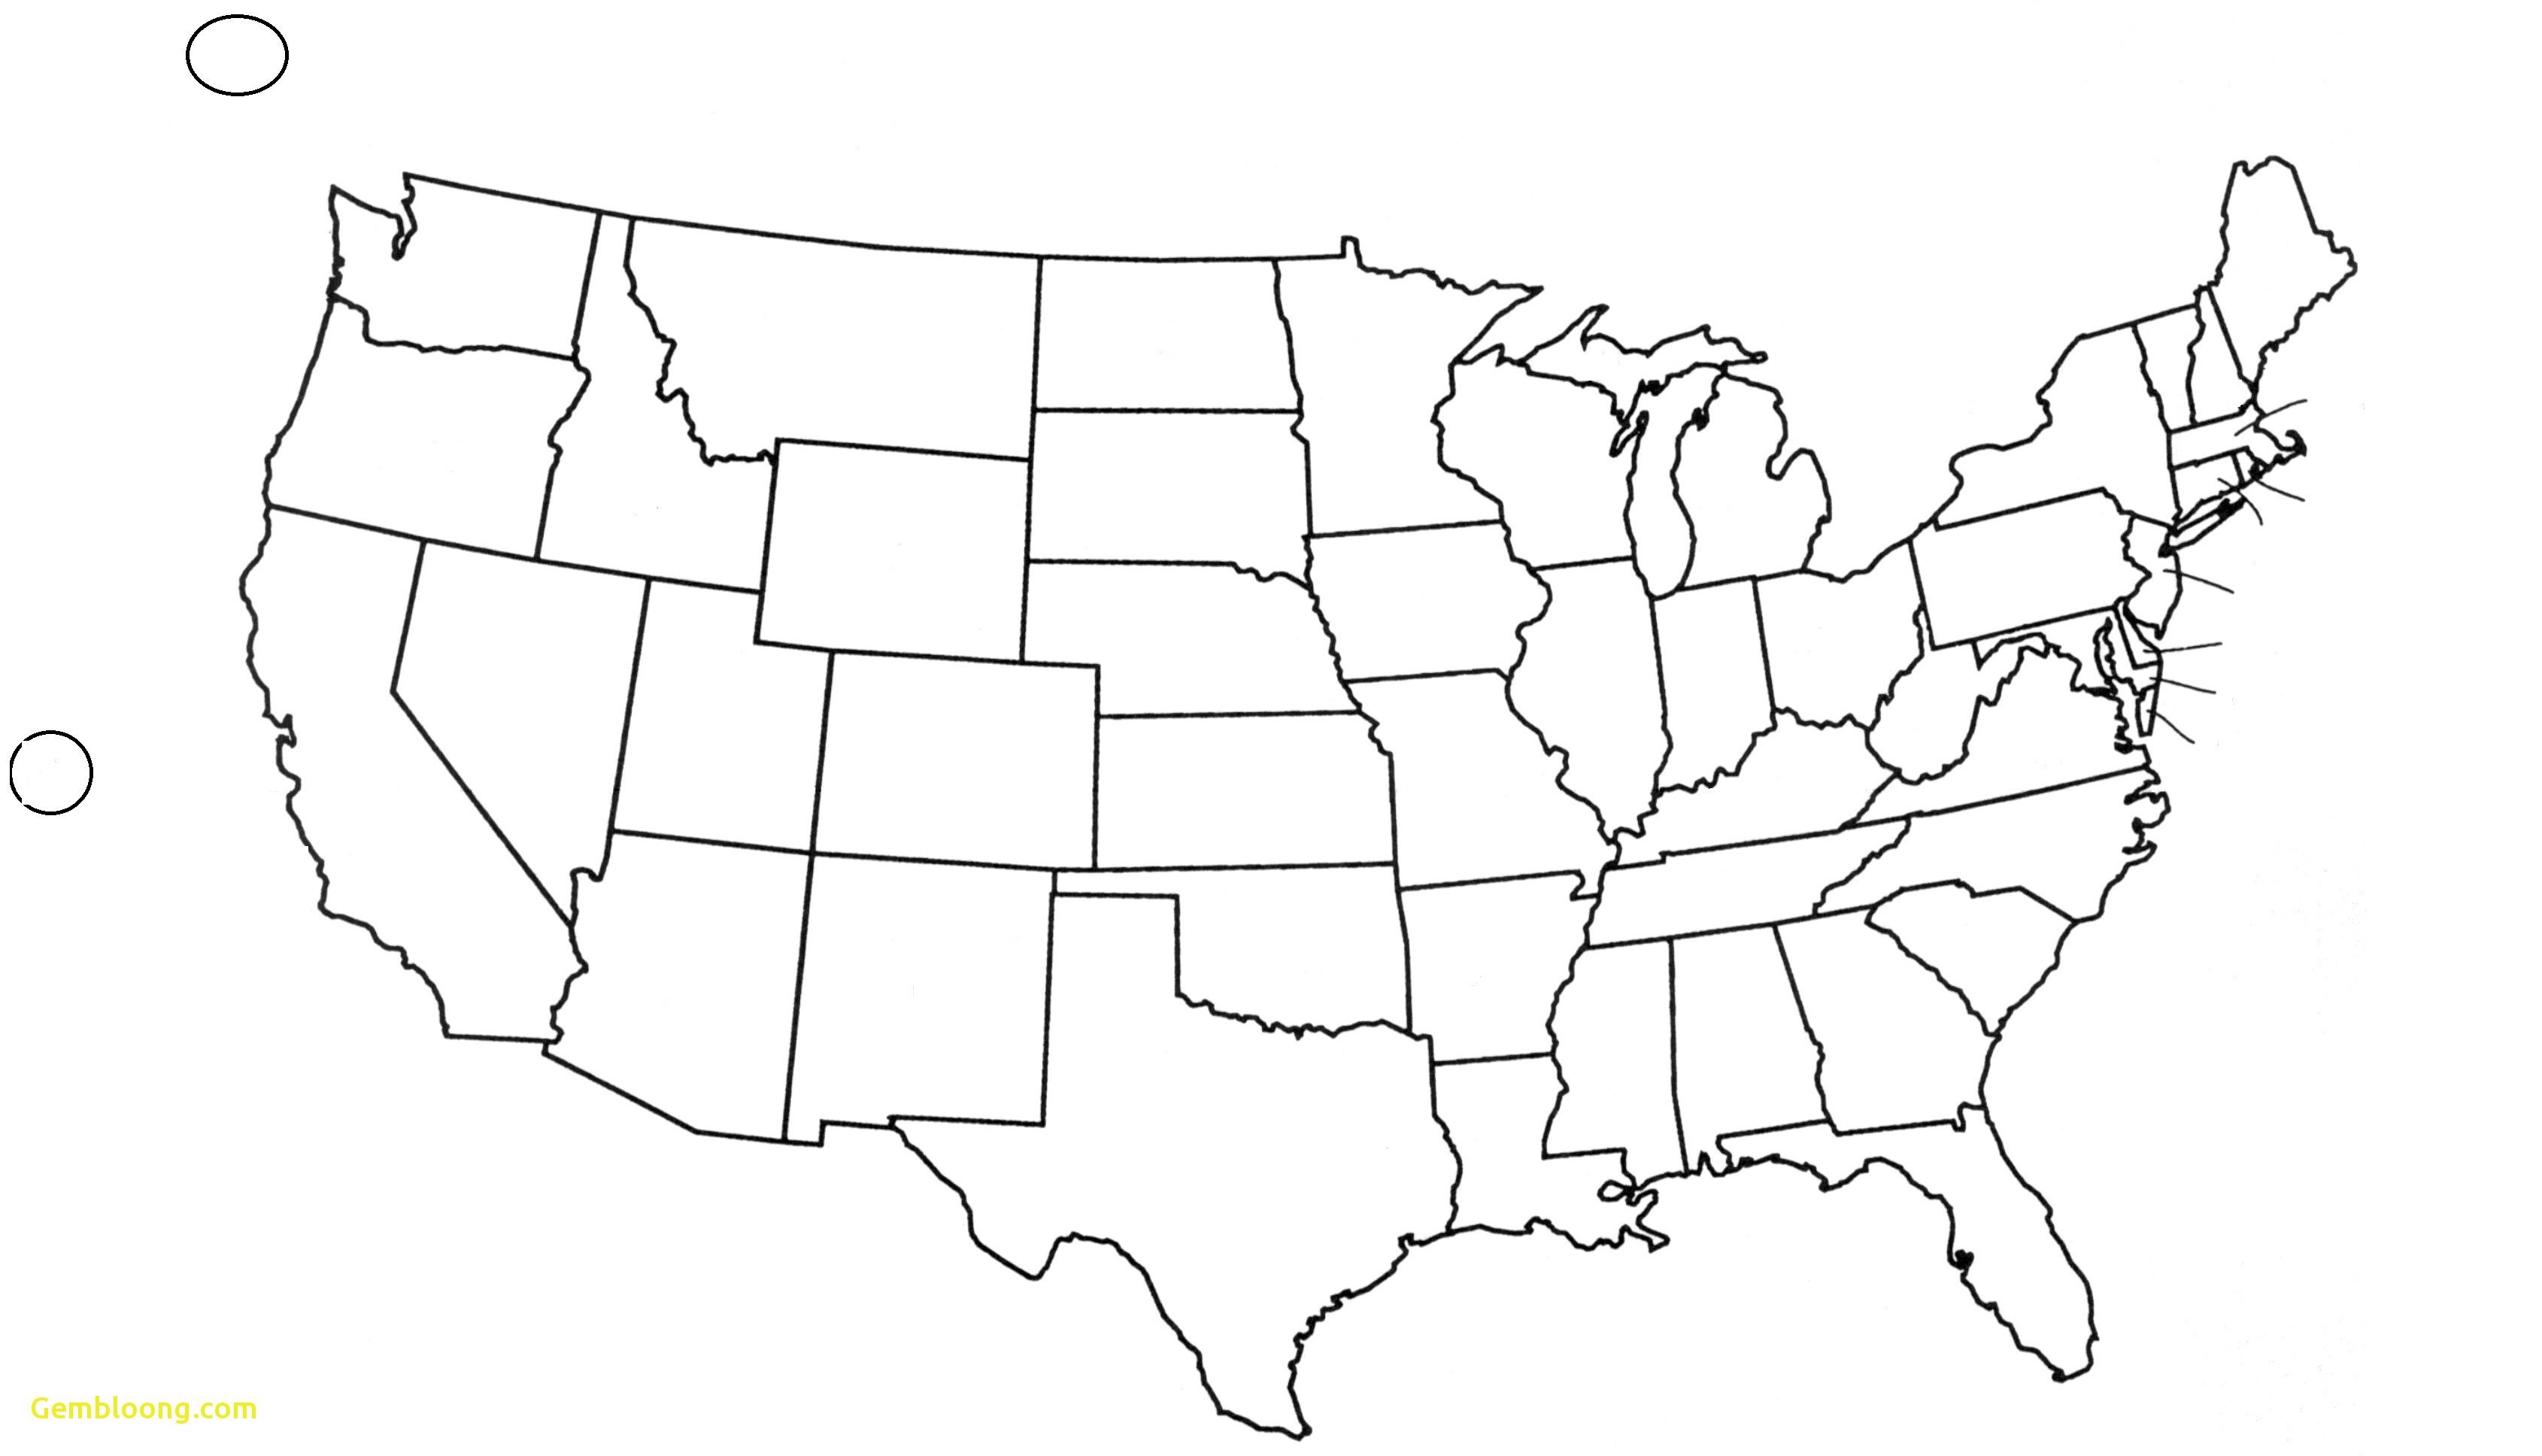 Free Printable Us Map States Labeled Elegant United States Map Blank - Free Printable Labeled Map Of The United States